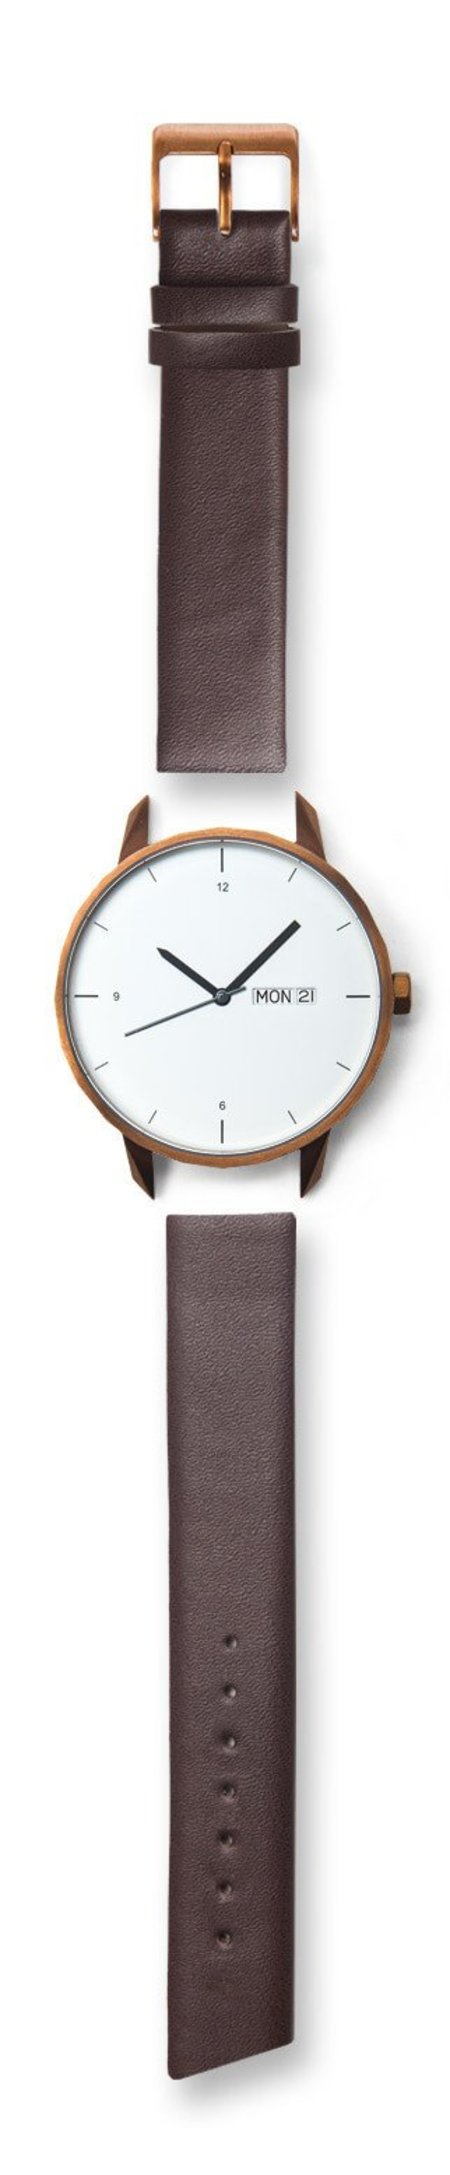 Tinker Watches 42mm Copper Watch Brown Strap